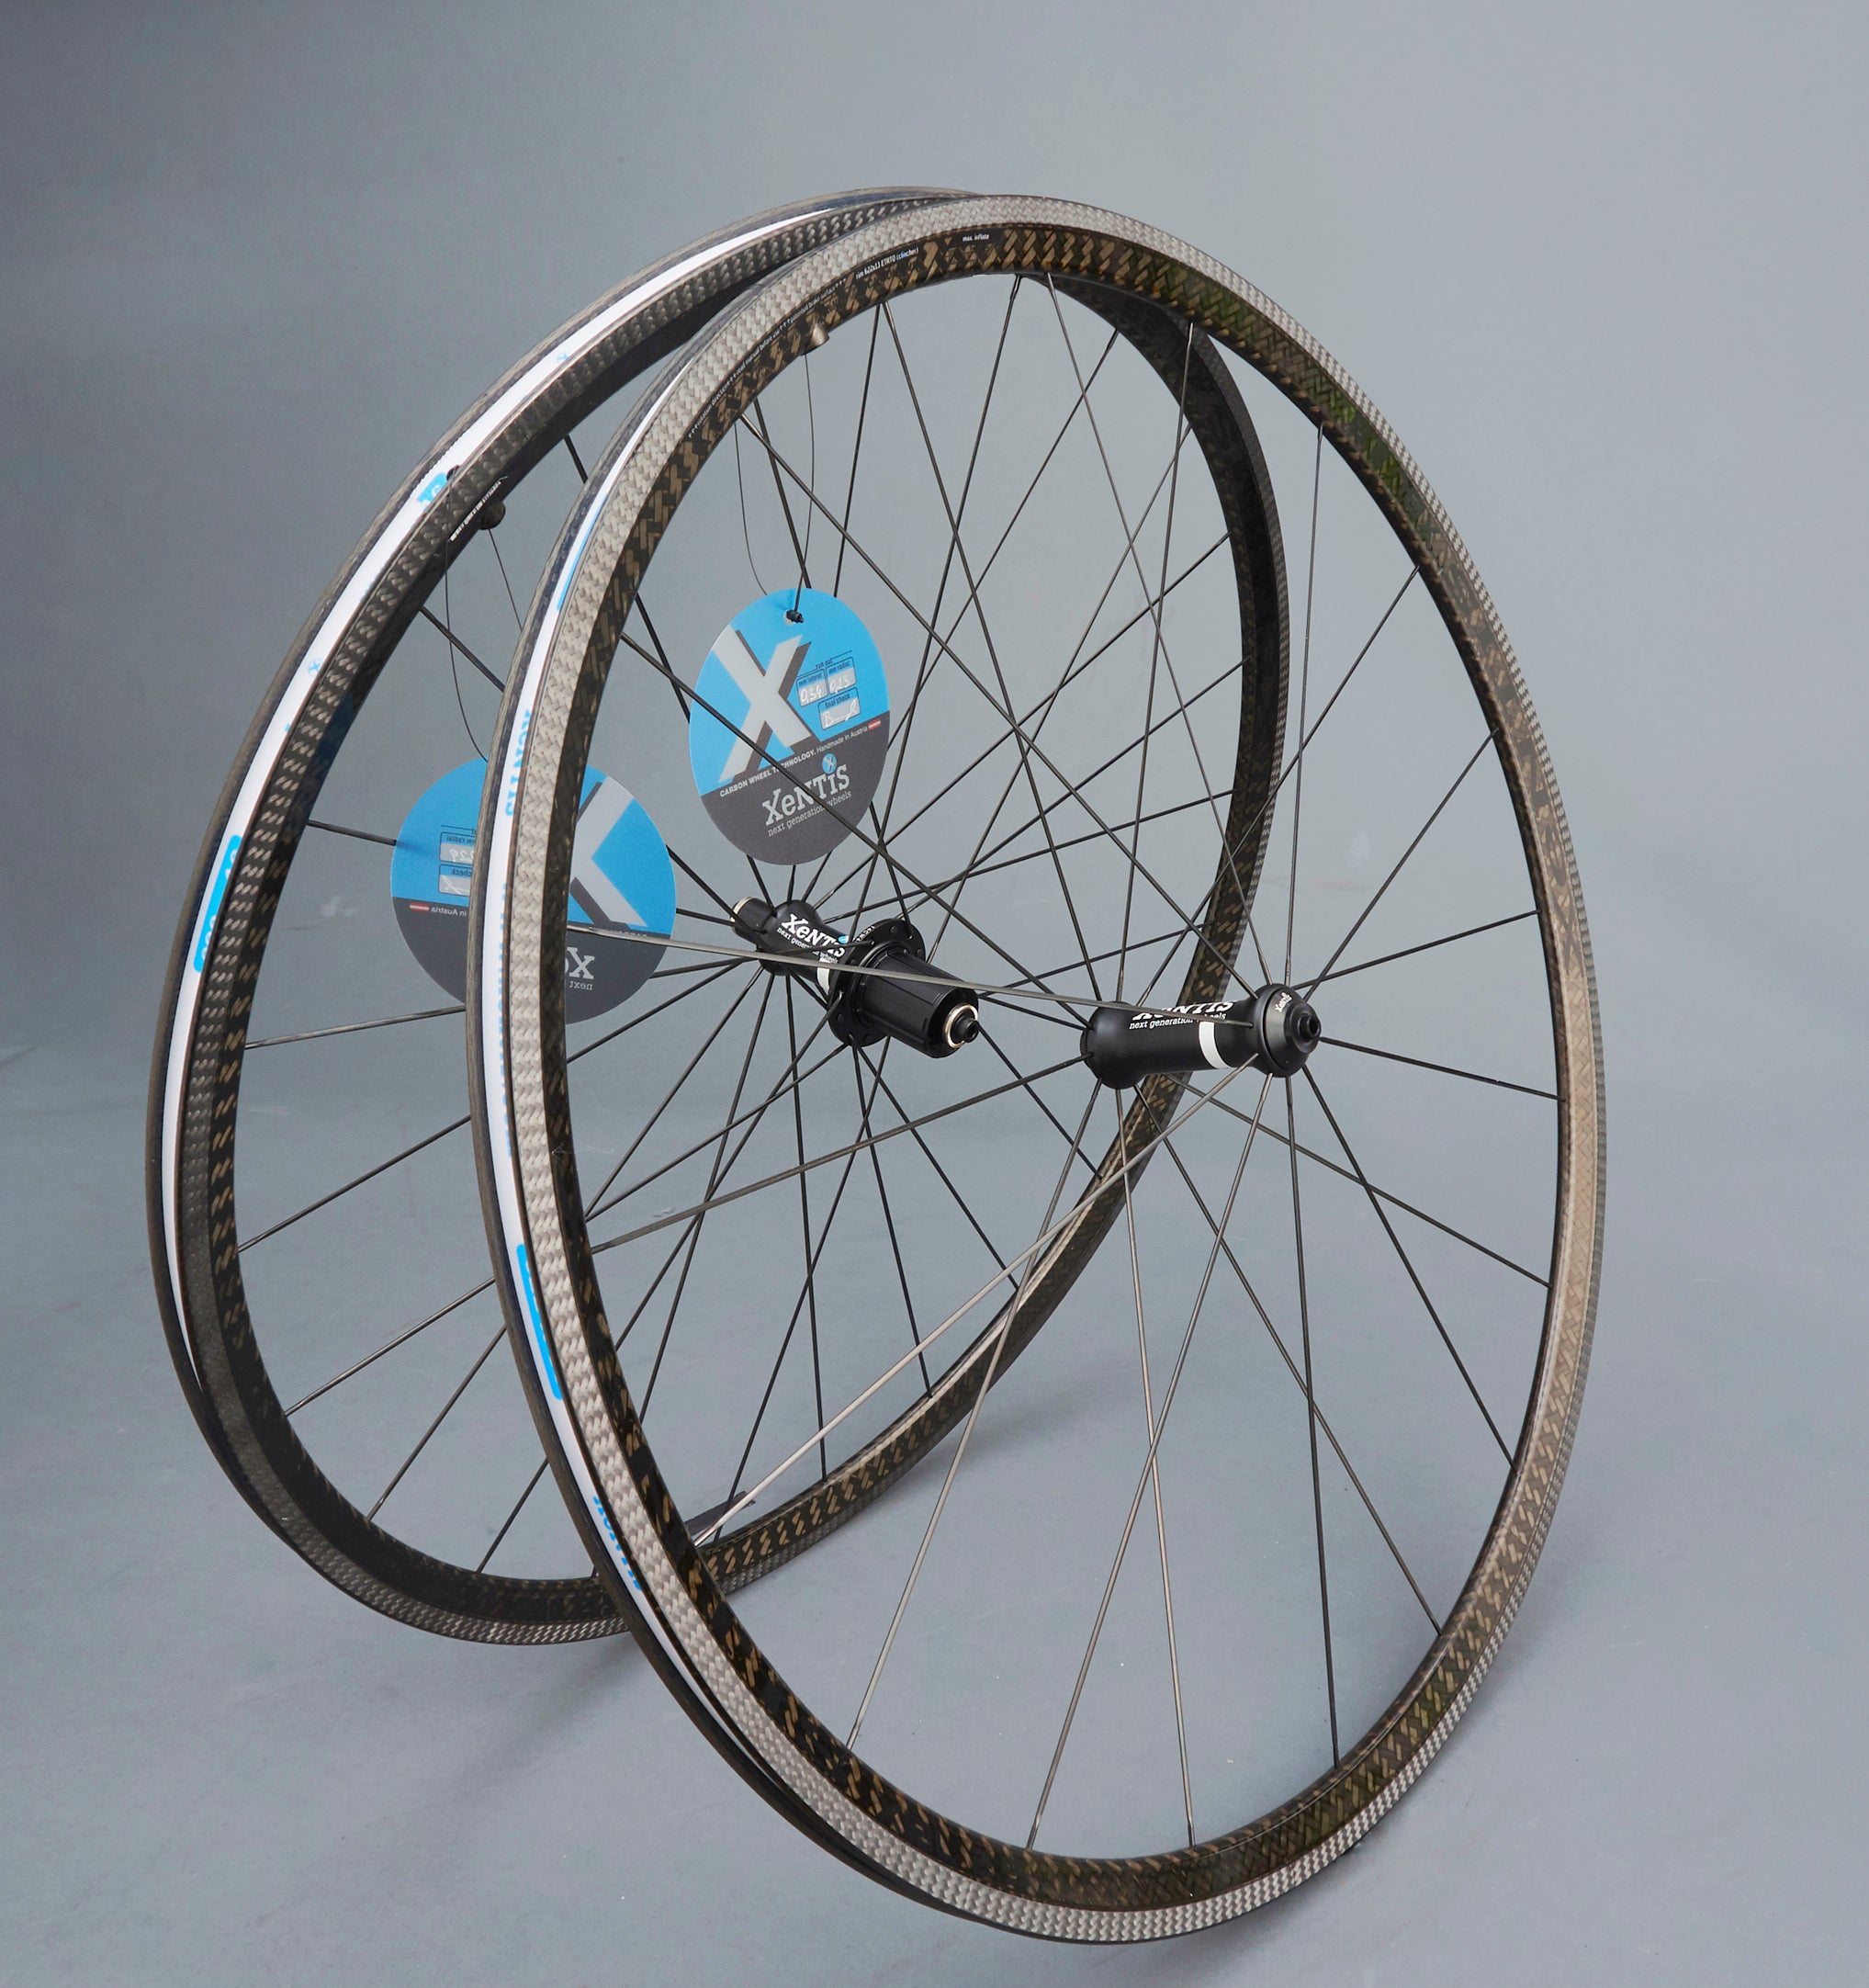 Xentis XBL 25 Clinchers